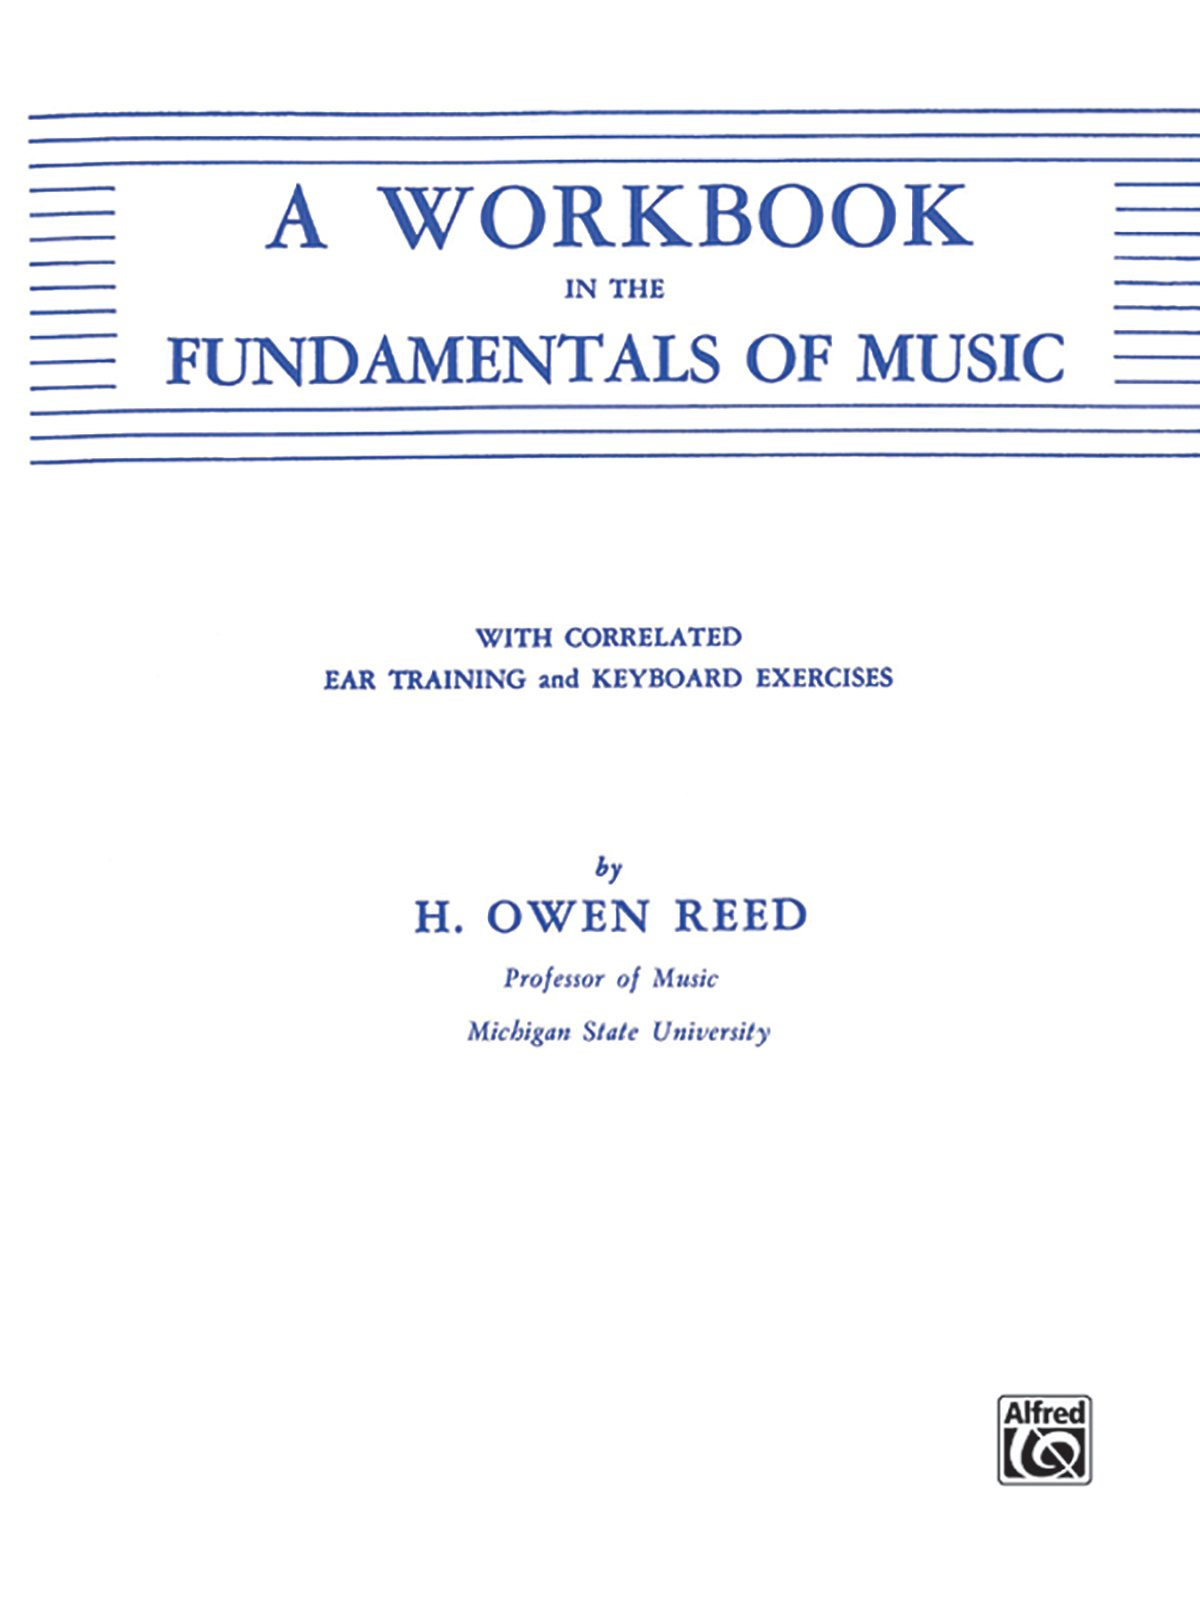 A Workbook in the Fundamentals of Music: Amazon.co.uk: H Owen Reed ...